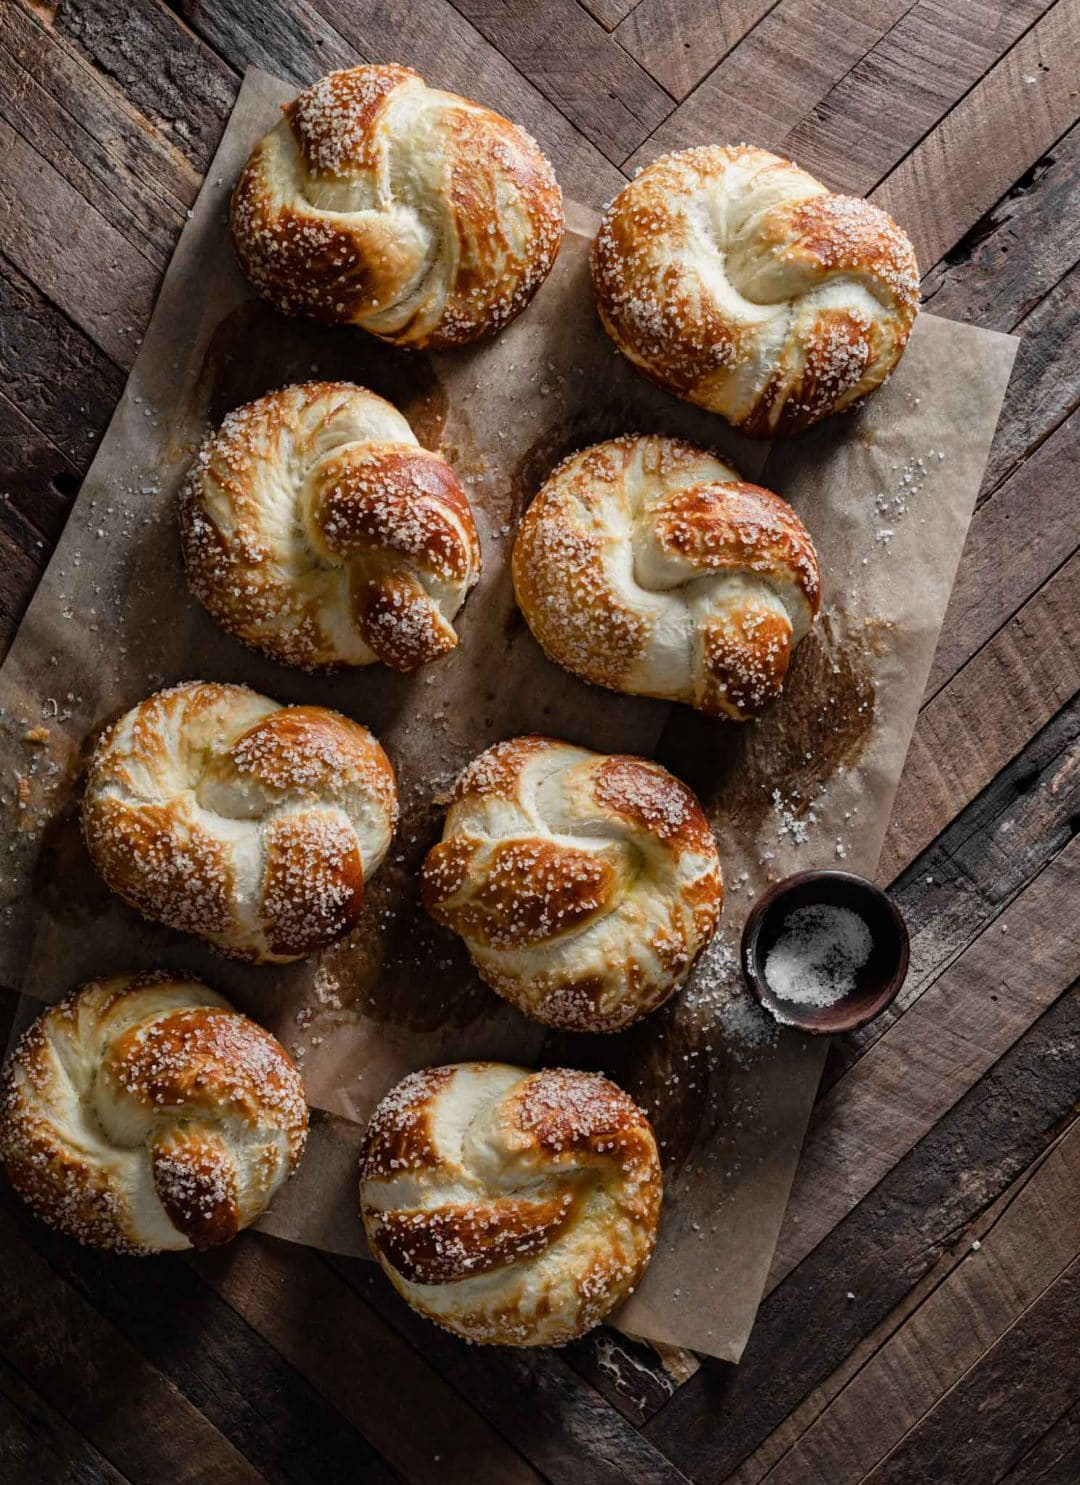 Salted pretzel knots on table in a row.